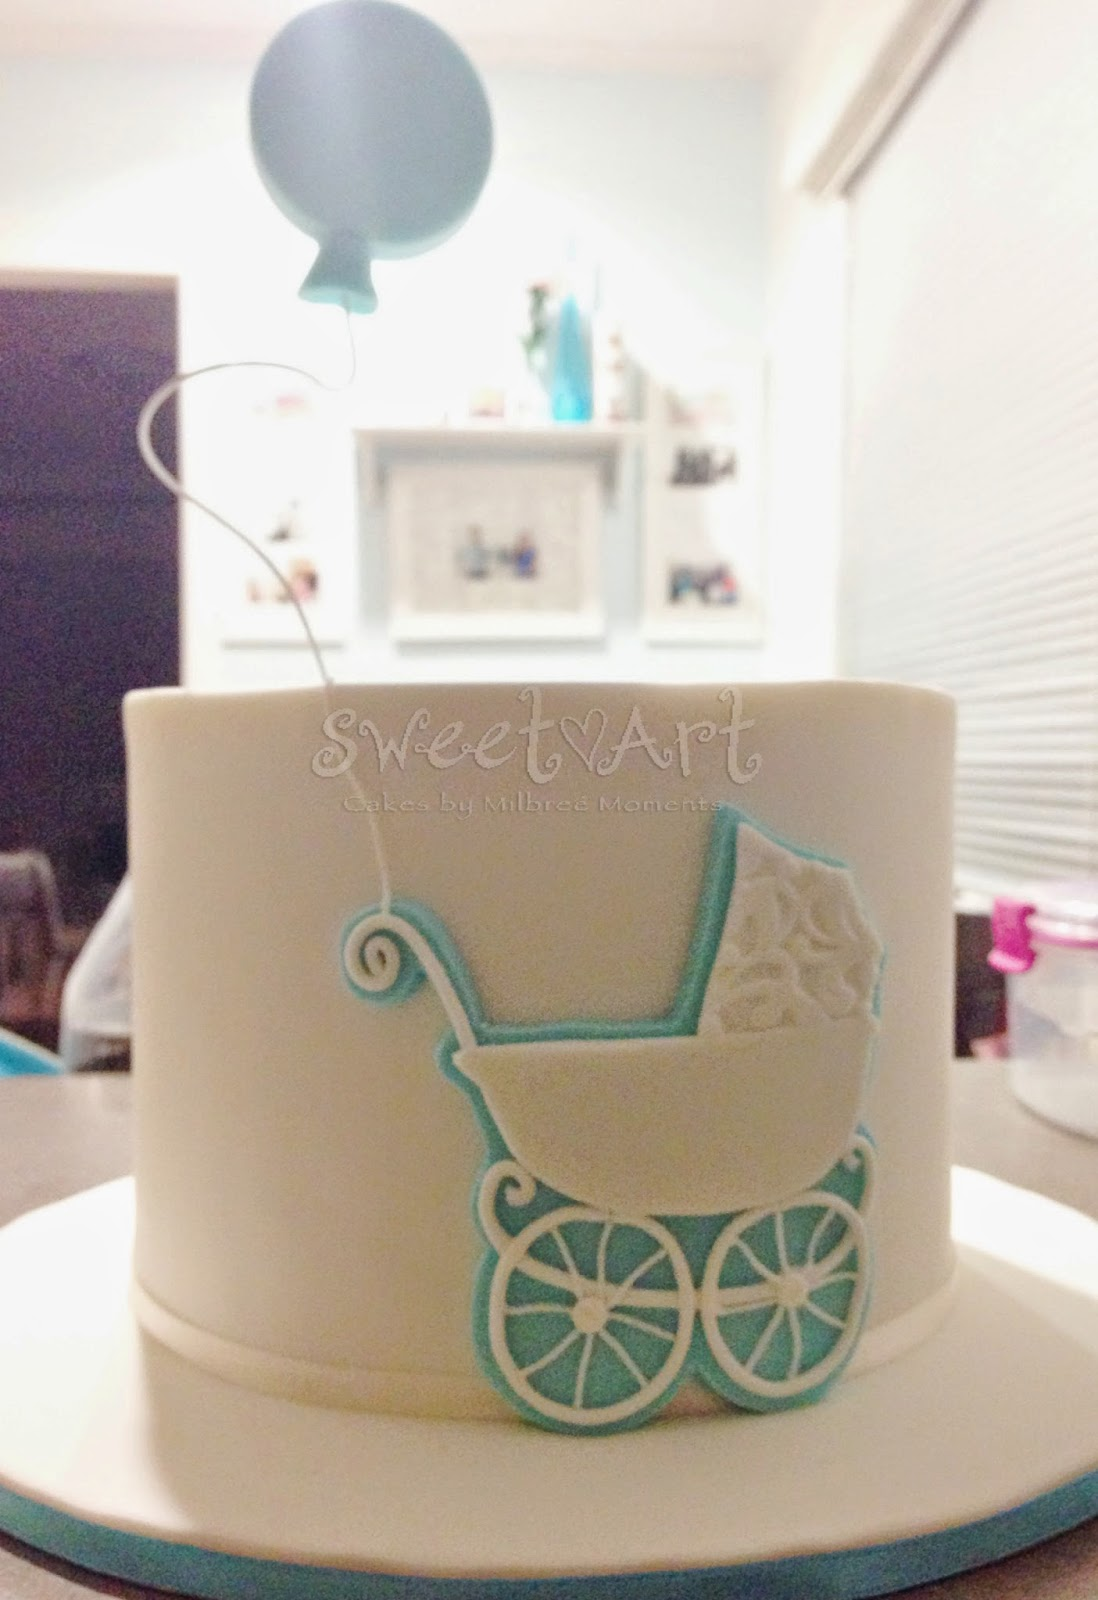 Delightful Vintage Baby Carriage Baby Shower Cake